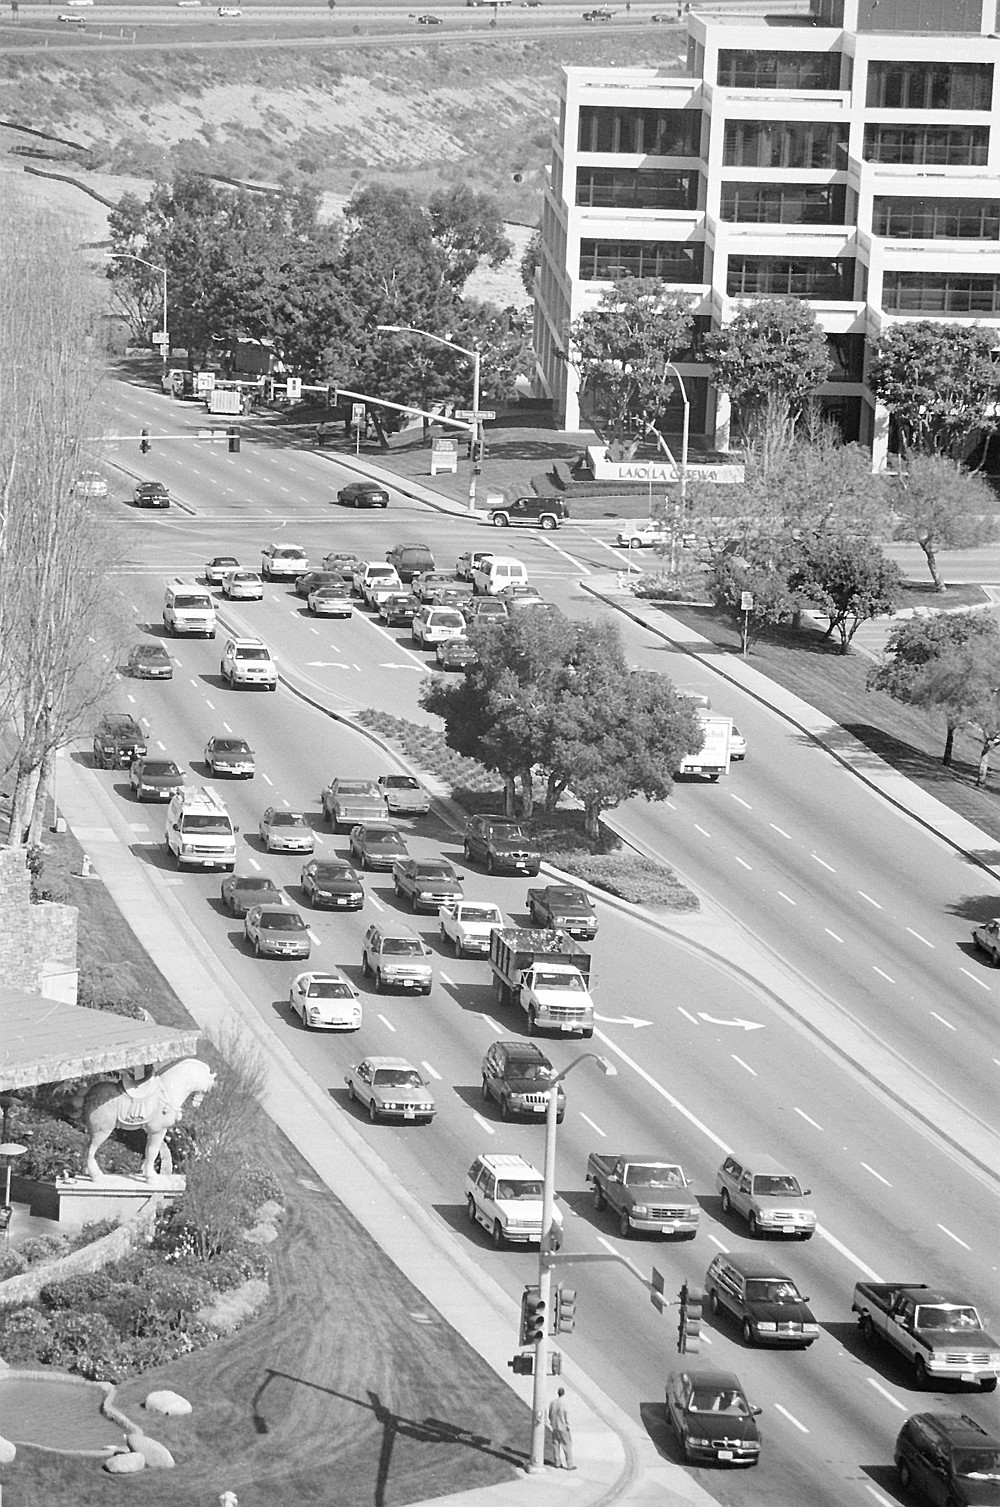 Anyone who isn't blind would see that we are already experiencing severe congestion in University City, mainly on La Jolla Village Drive.